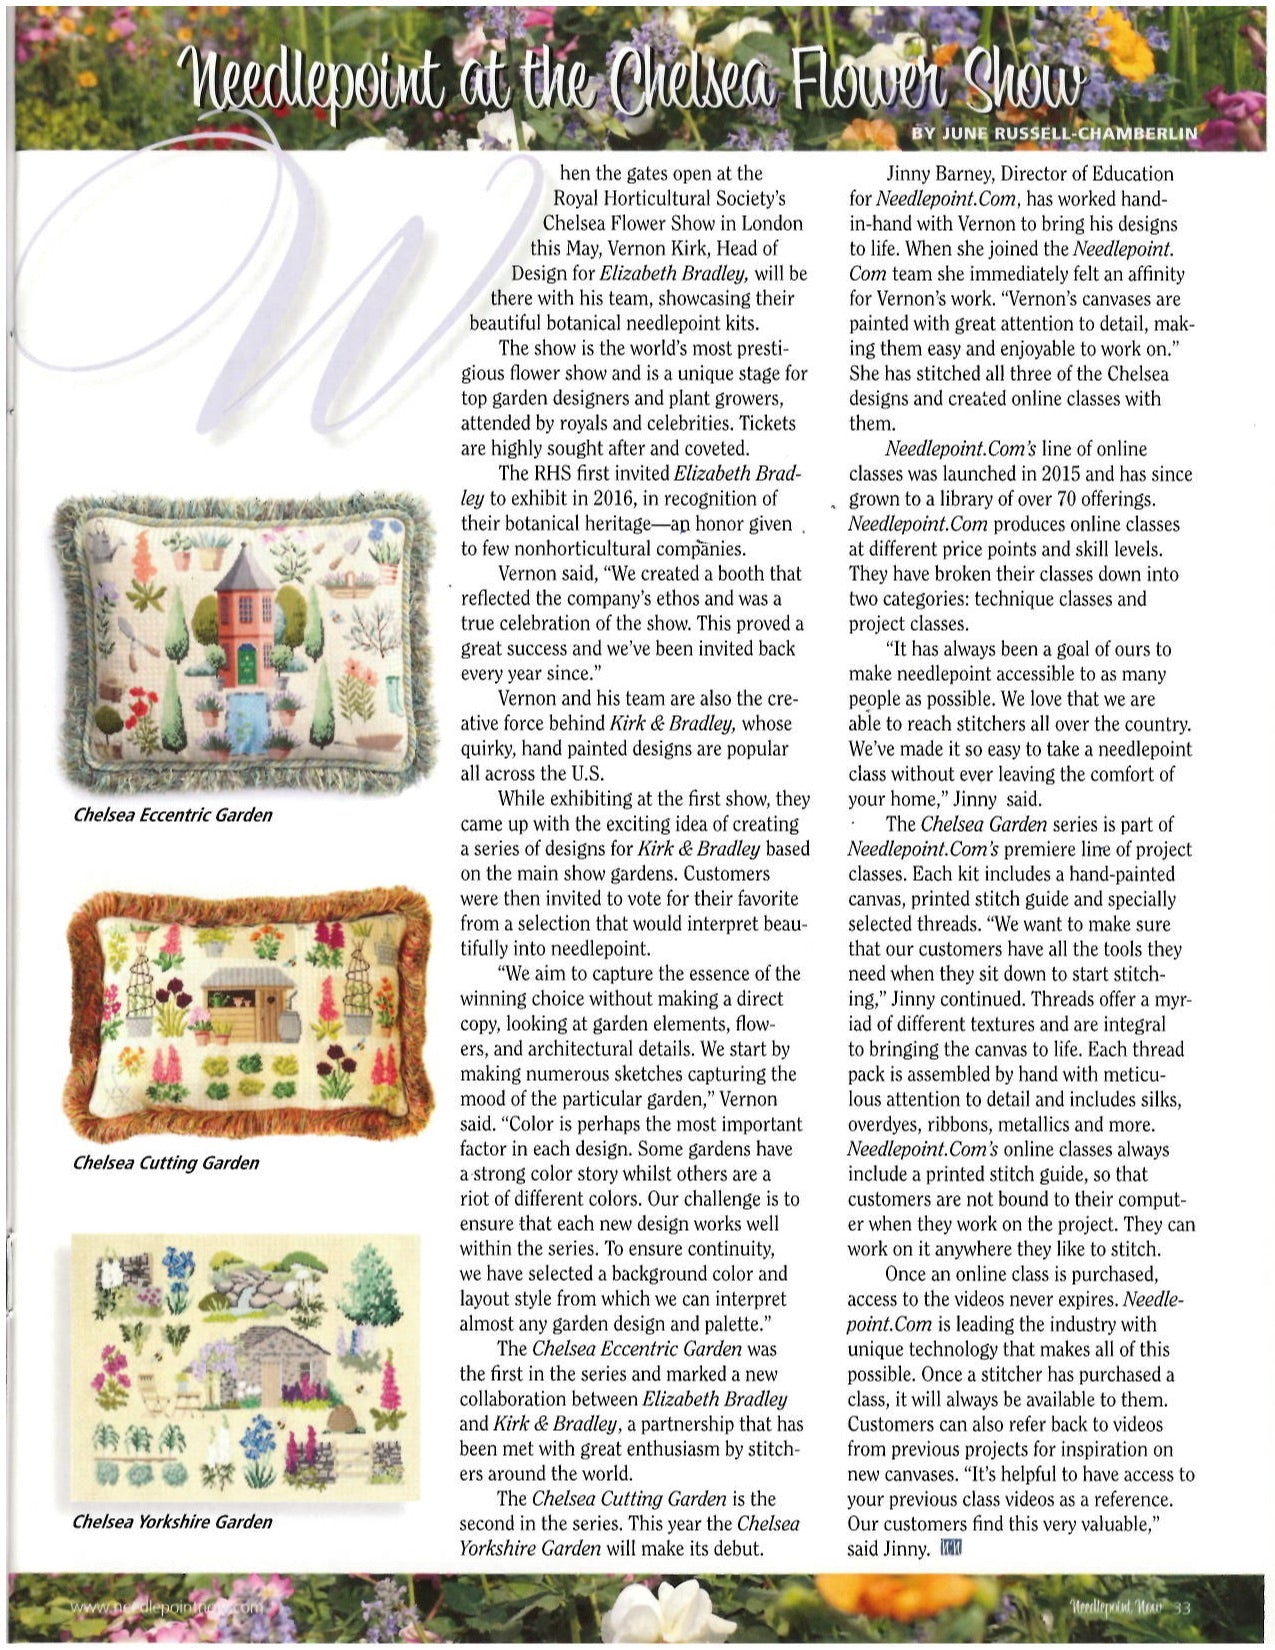 Elizabeth Bradley Design article feature in Needlepoint Now Magazine